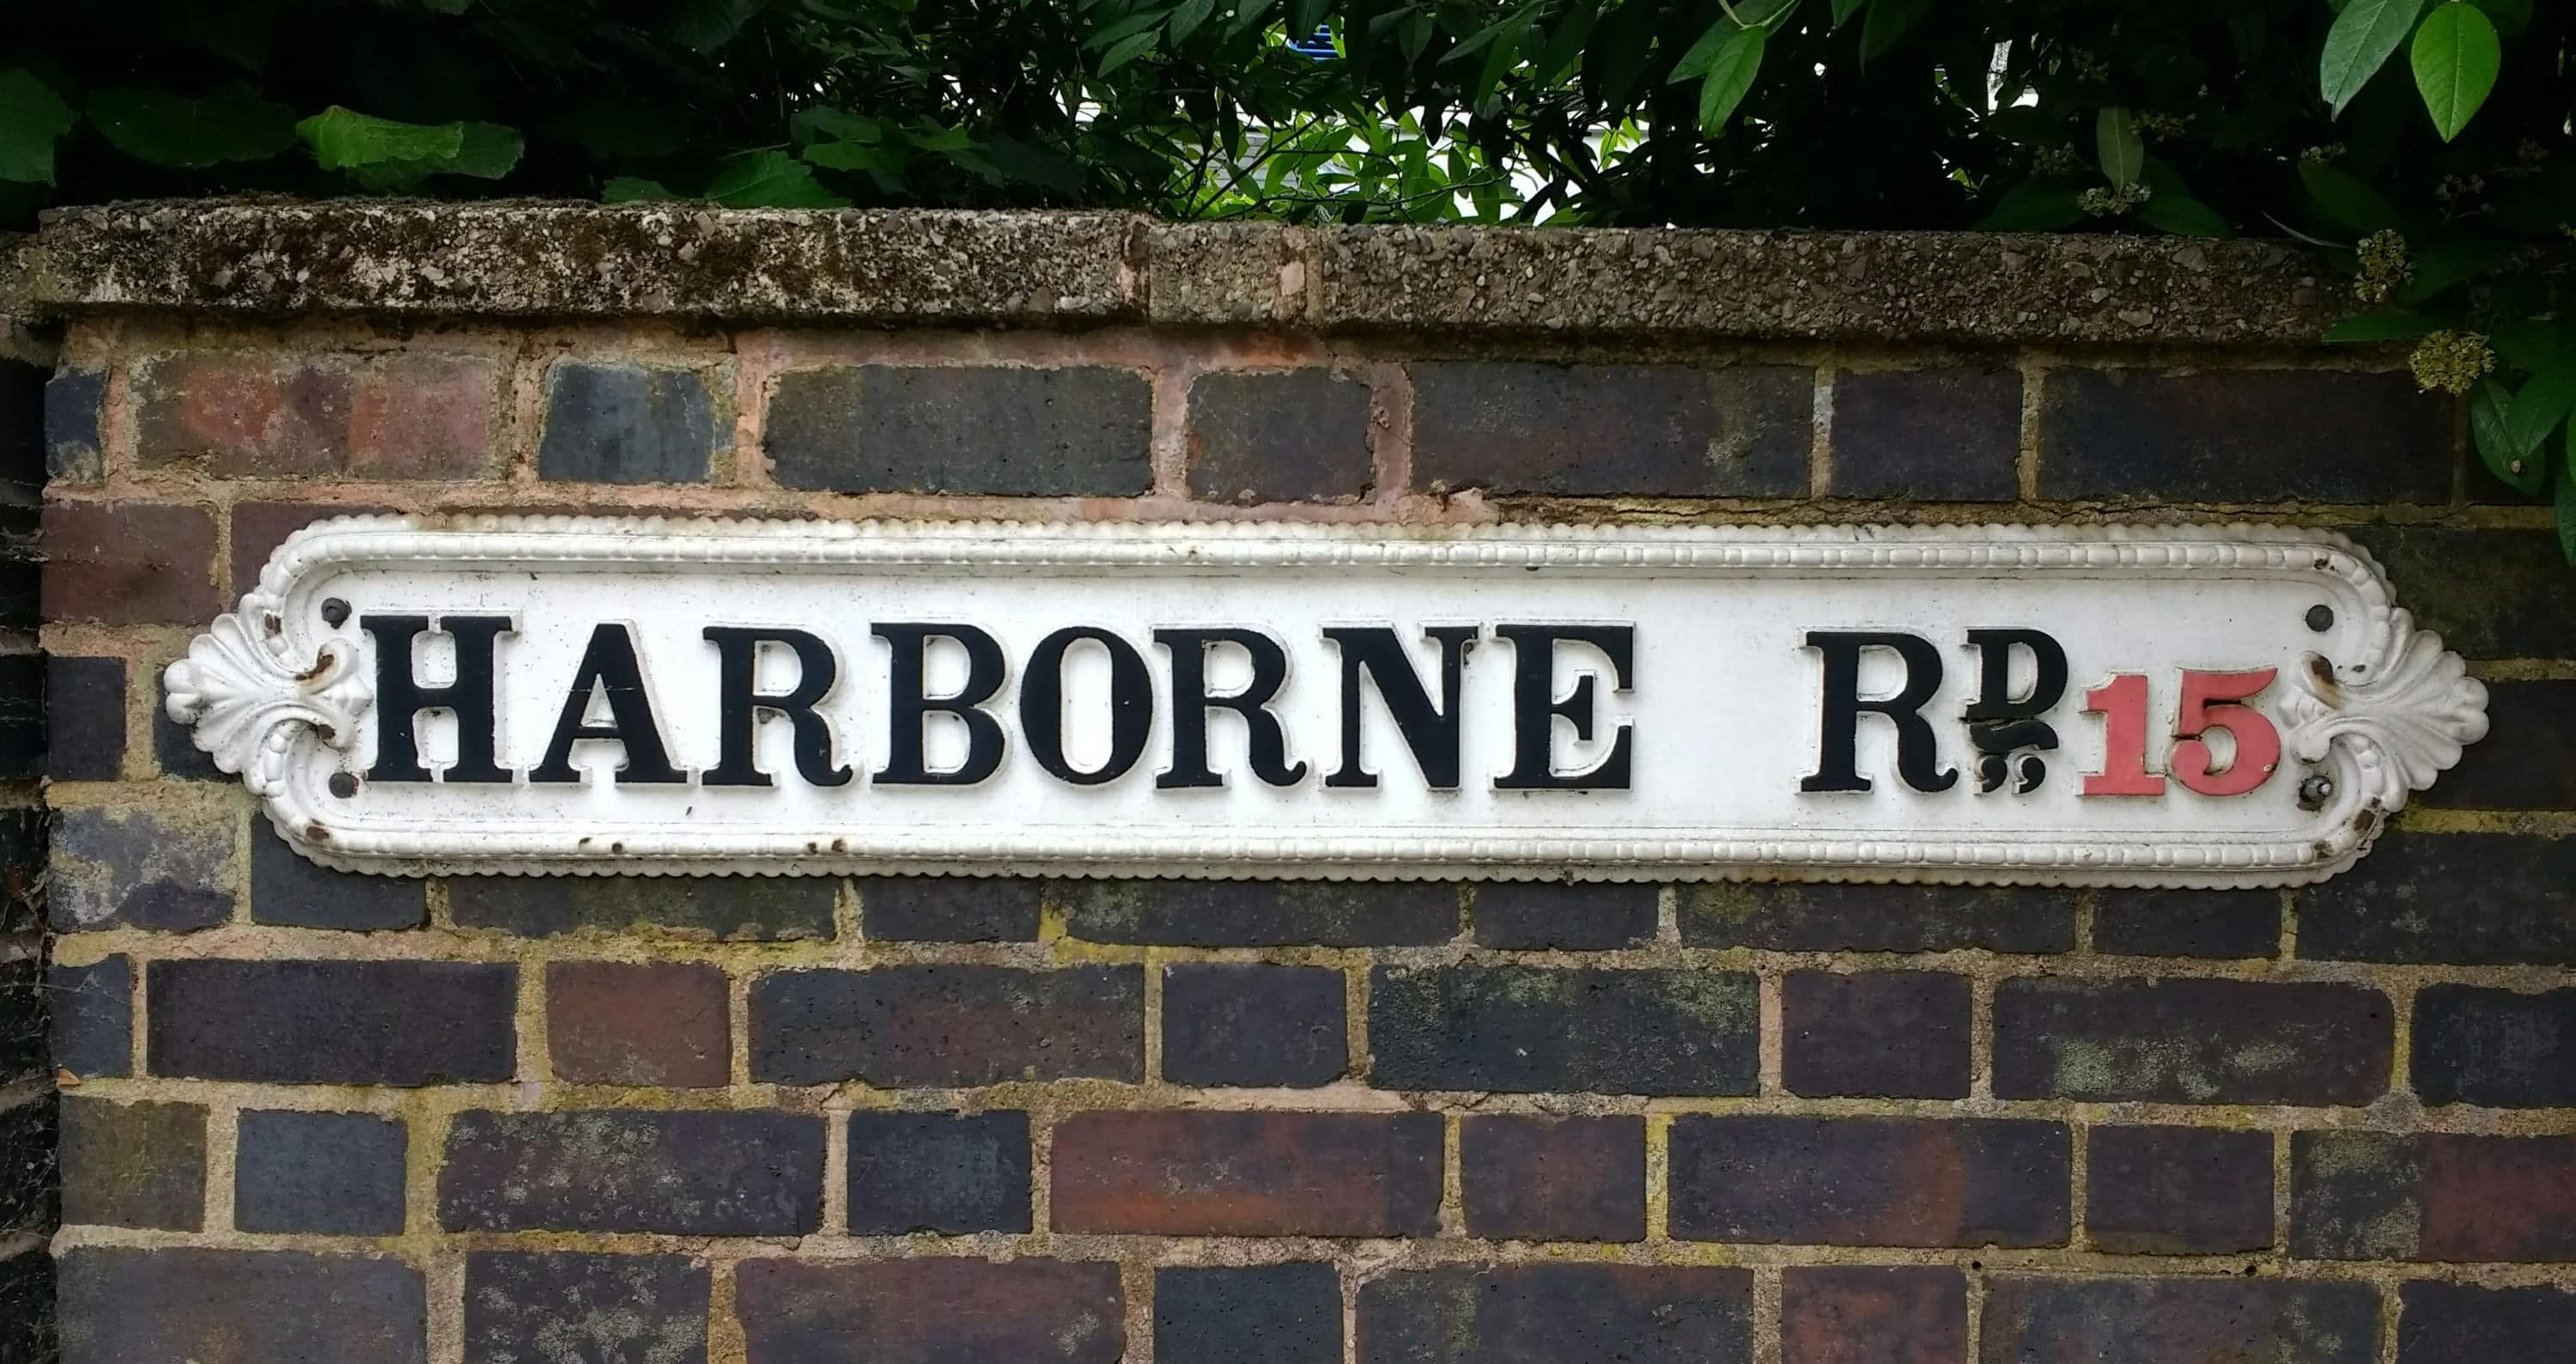 Cast-iron street sign for Harborne Road, Birmingham